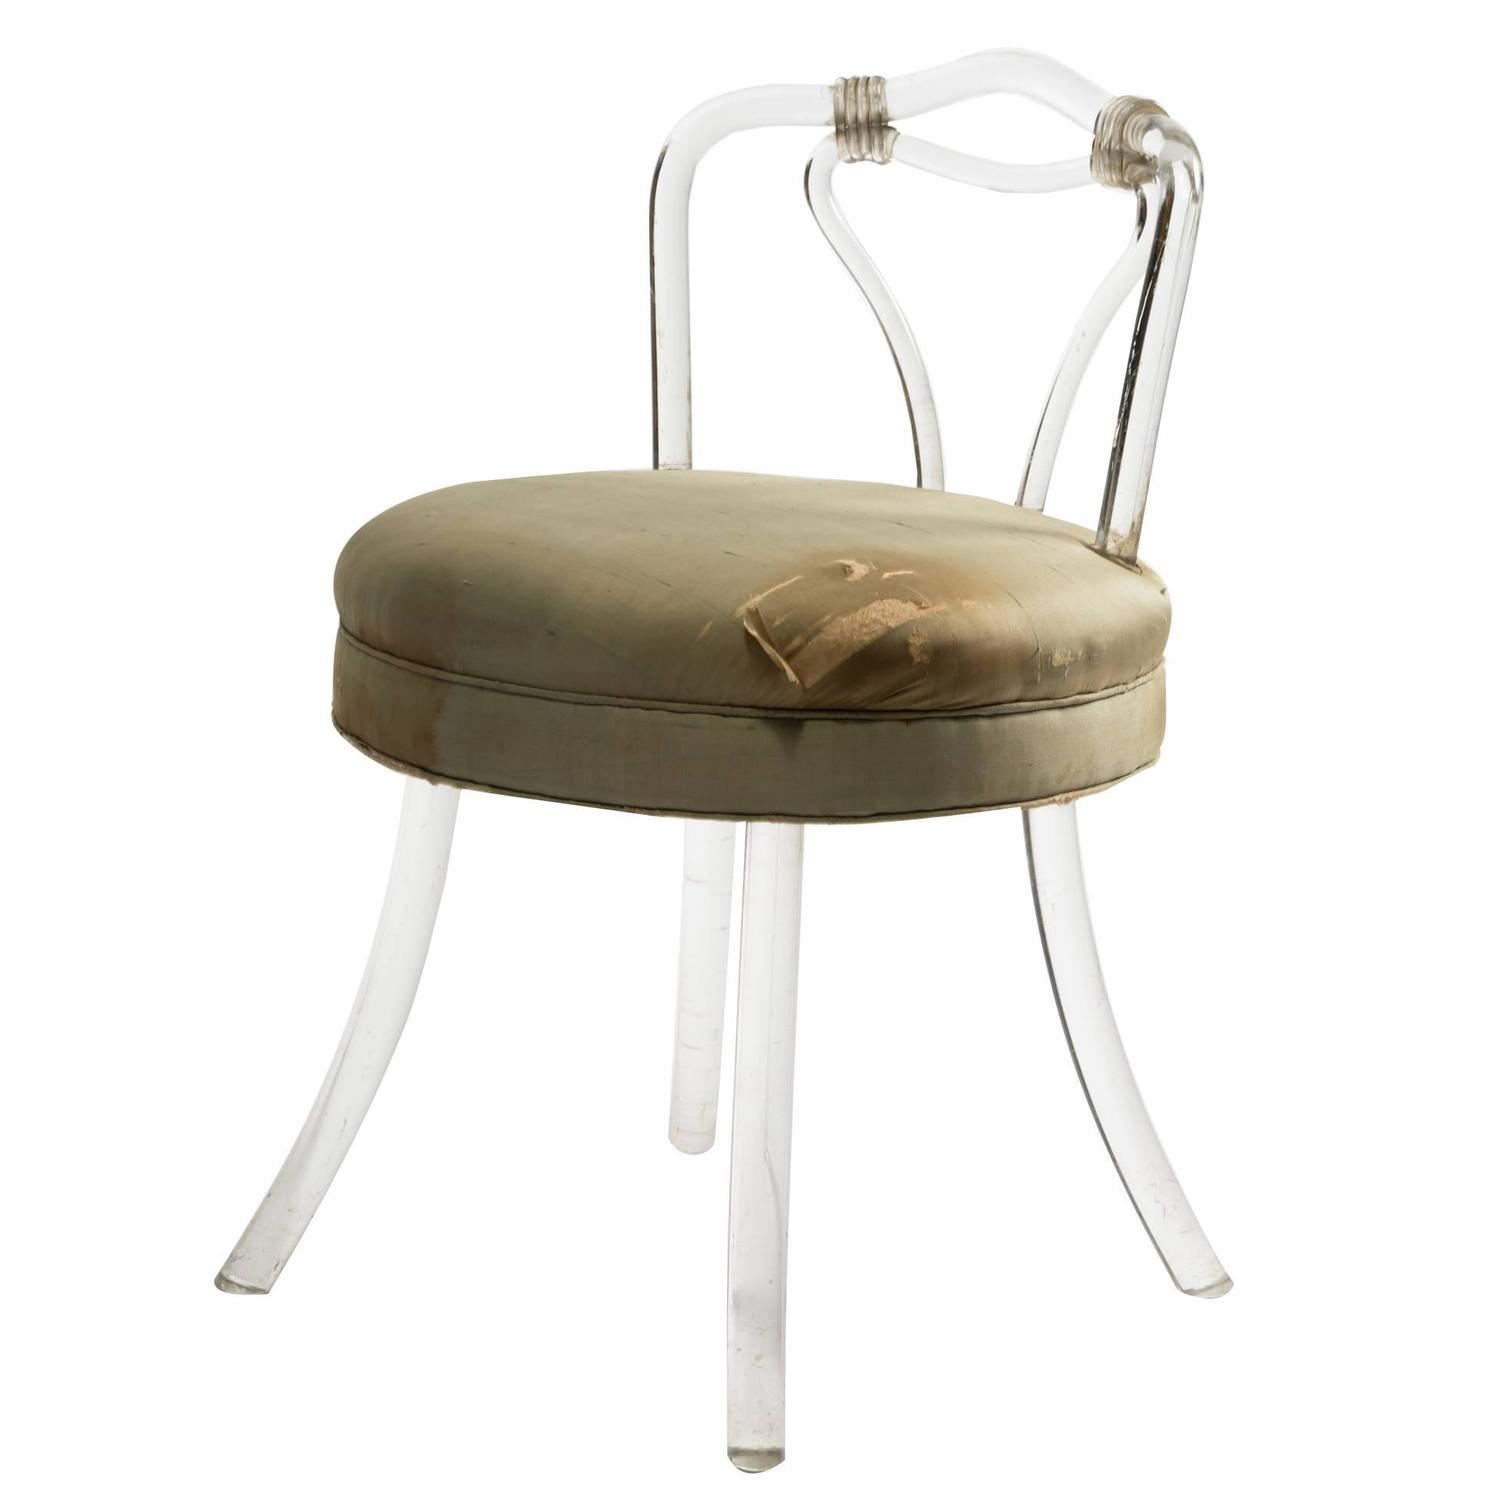 1930s lucite vanity stool at 1stdibs - Acrylic vanity chair ...